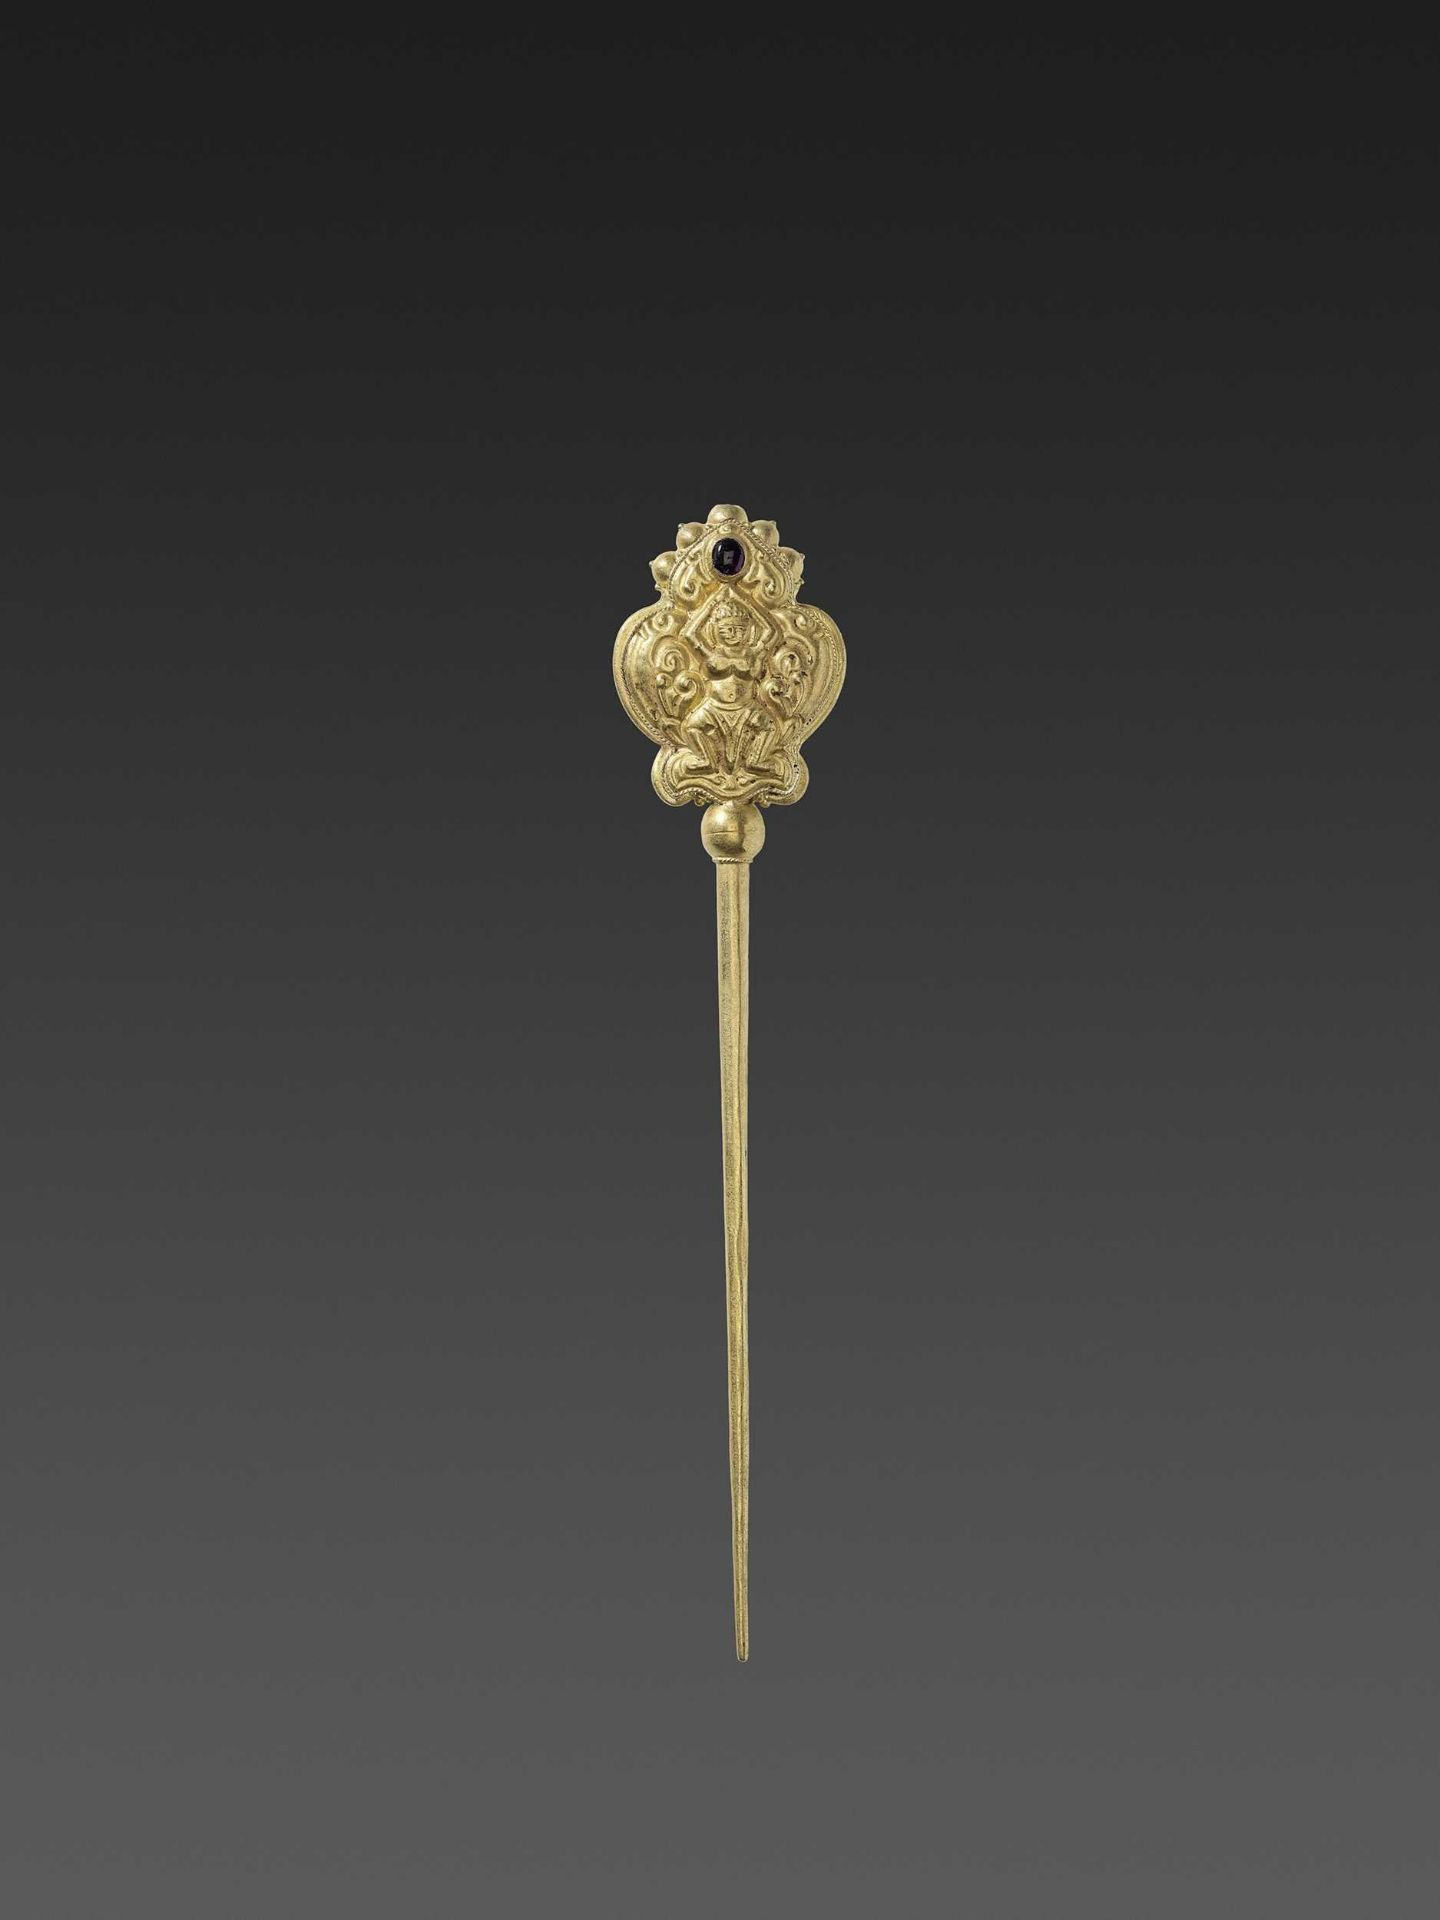 A CHAM GEMSTONE-SET GOLD REPOUSSÉ HAIRPIN WITH DANCING APSARAS